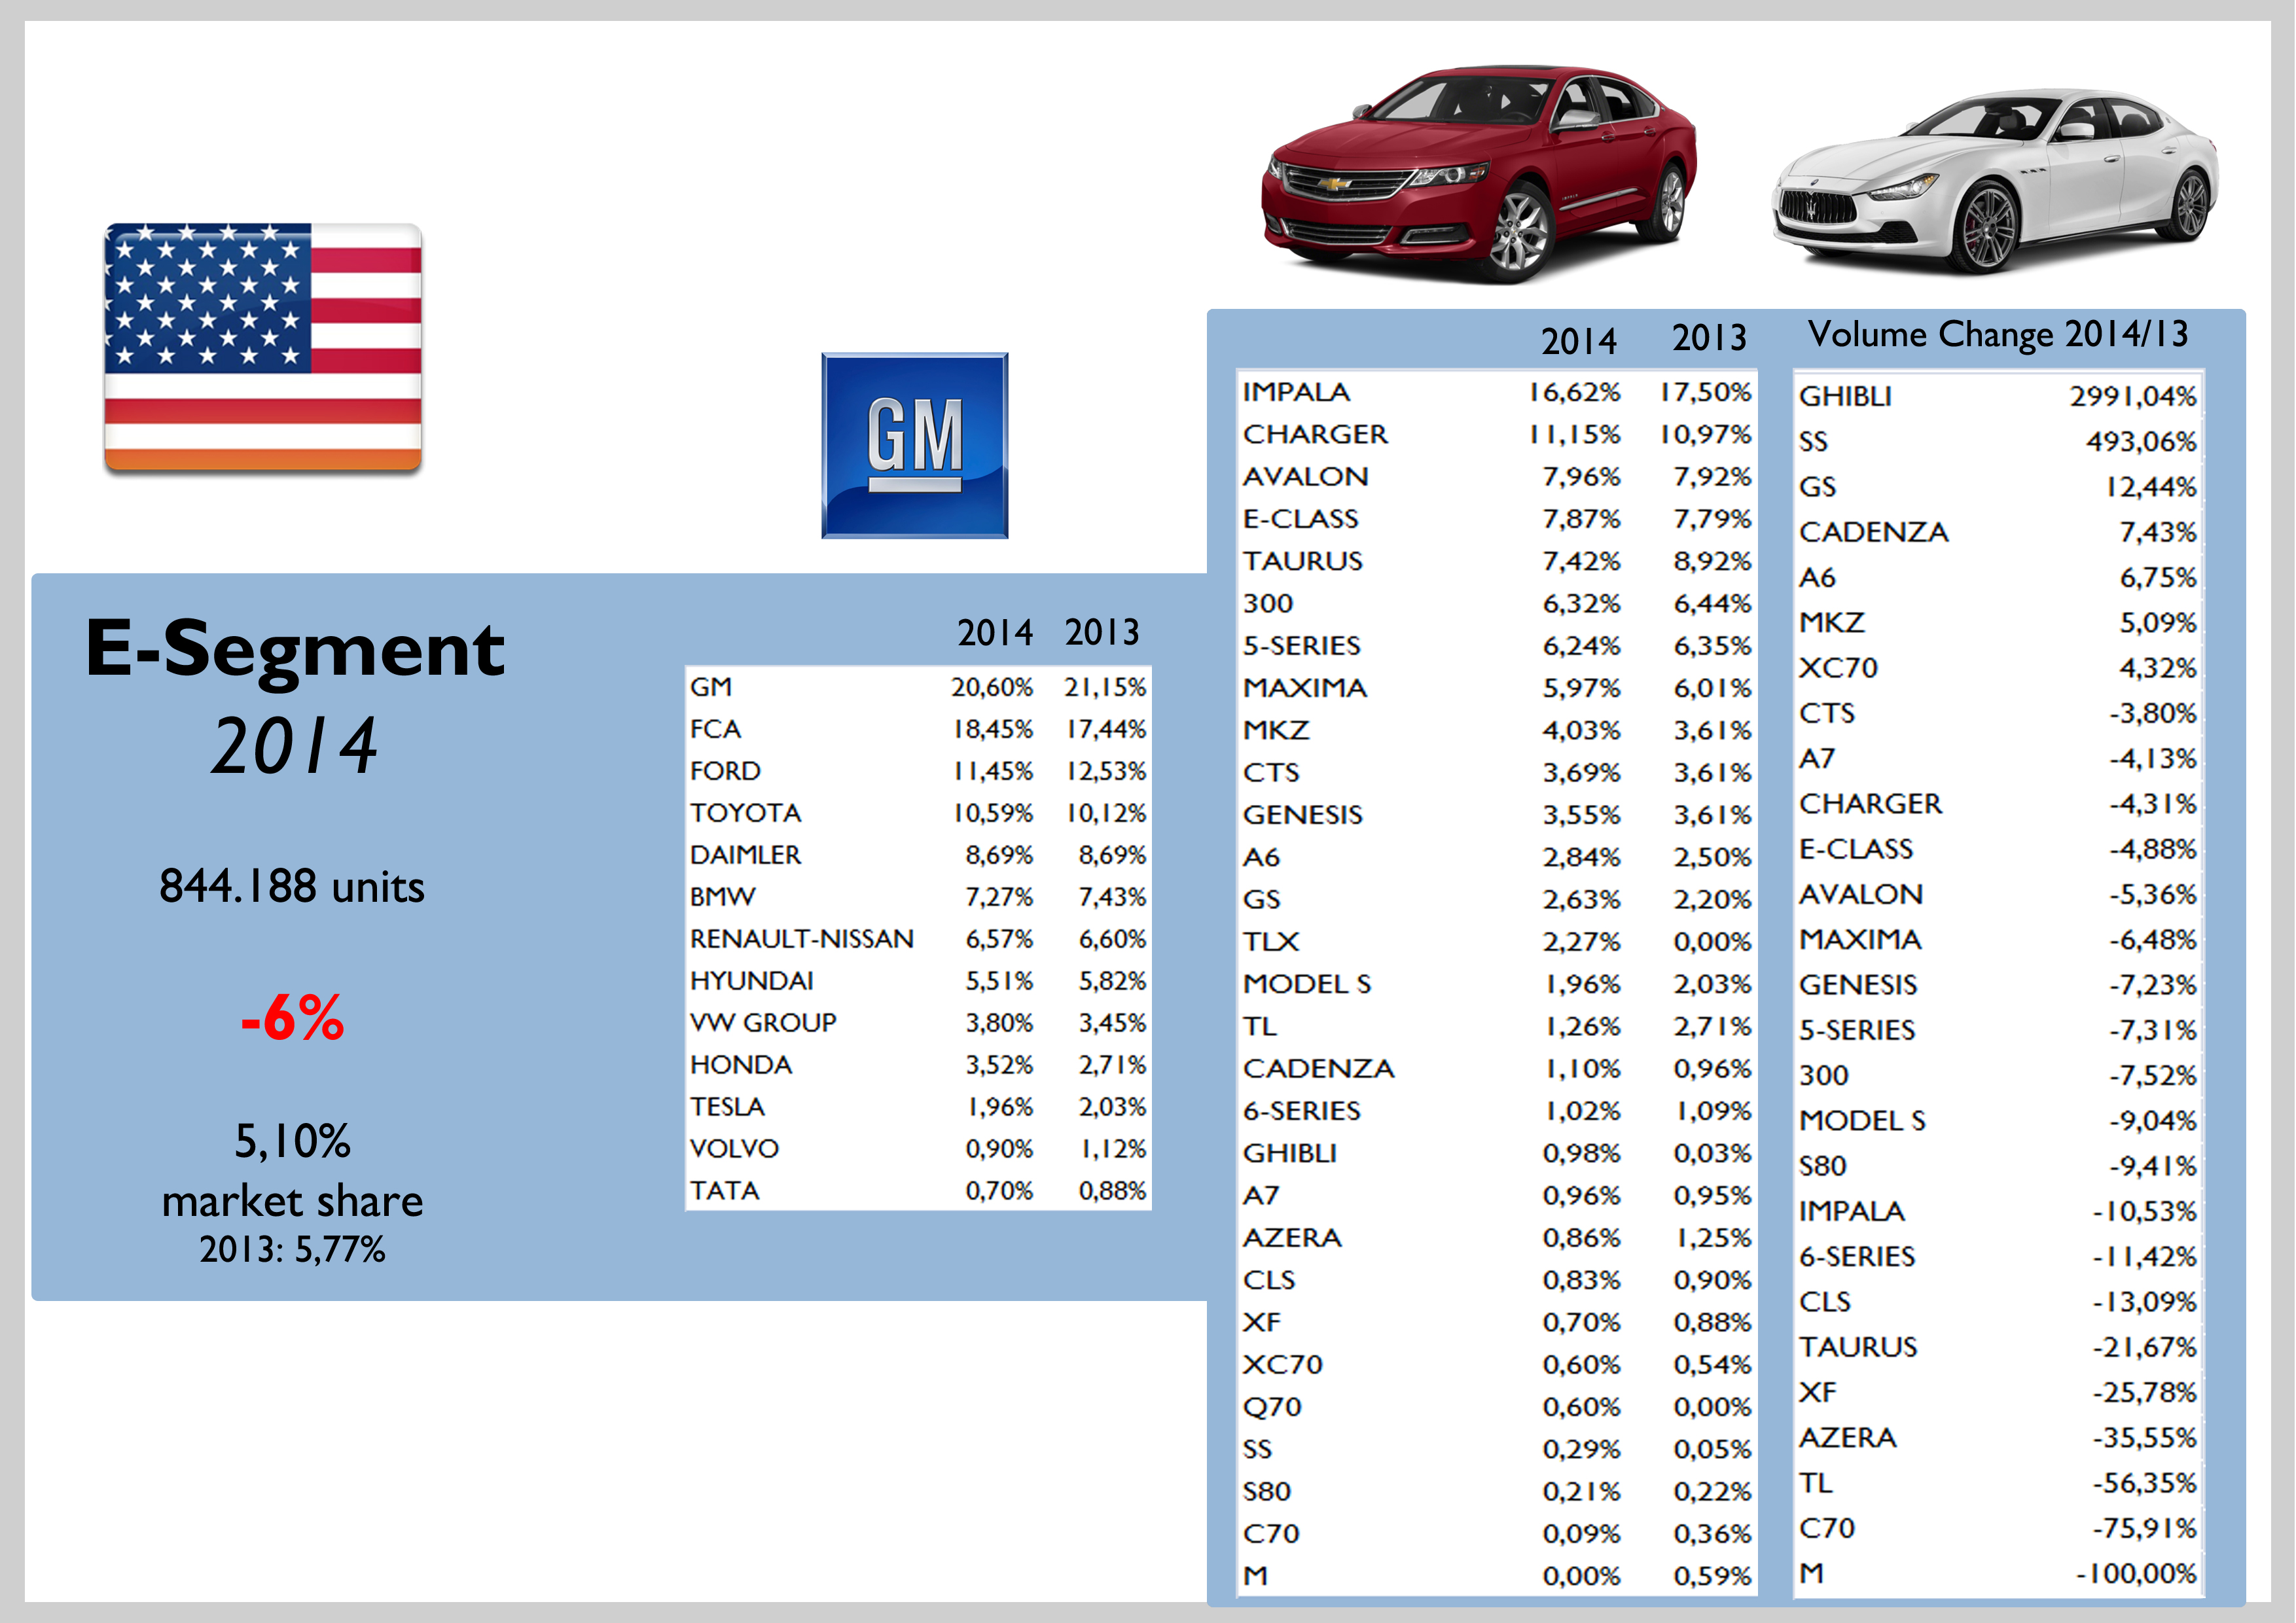 Fca Usa 2014 Sales Results Insights Fiat Group S World